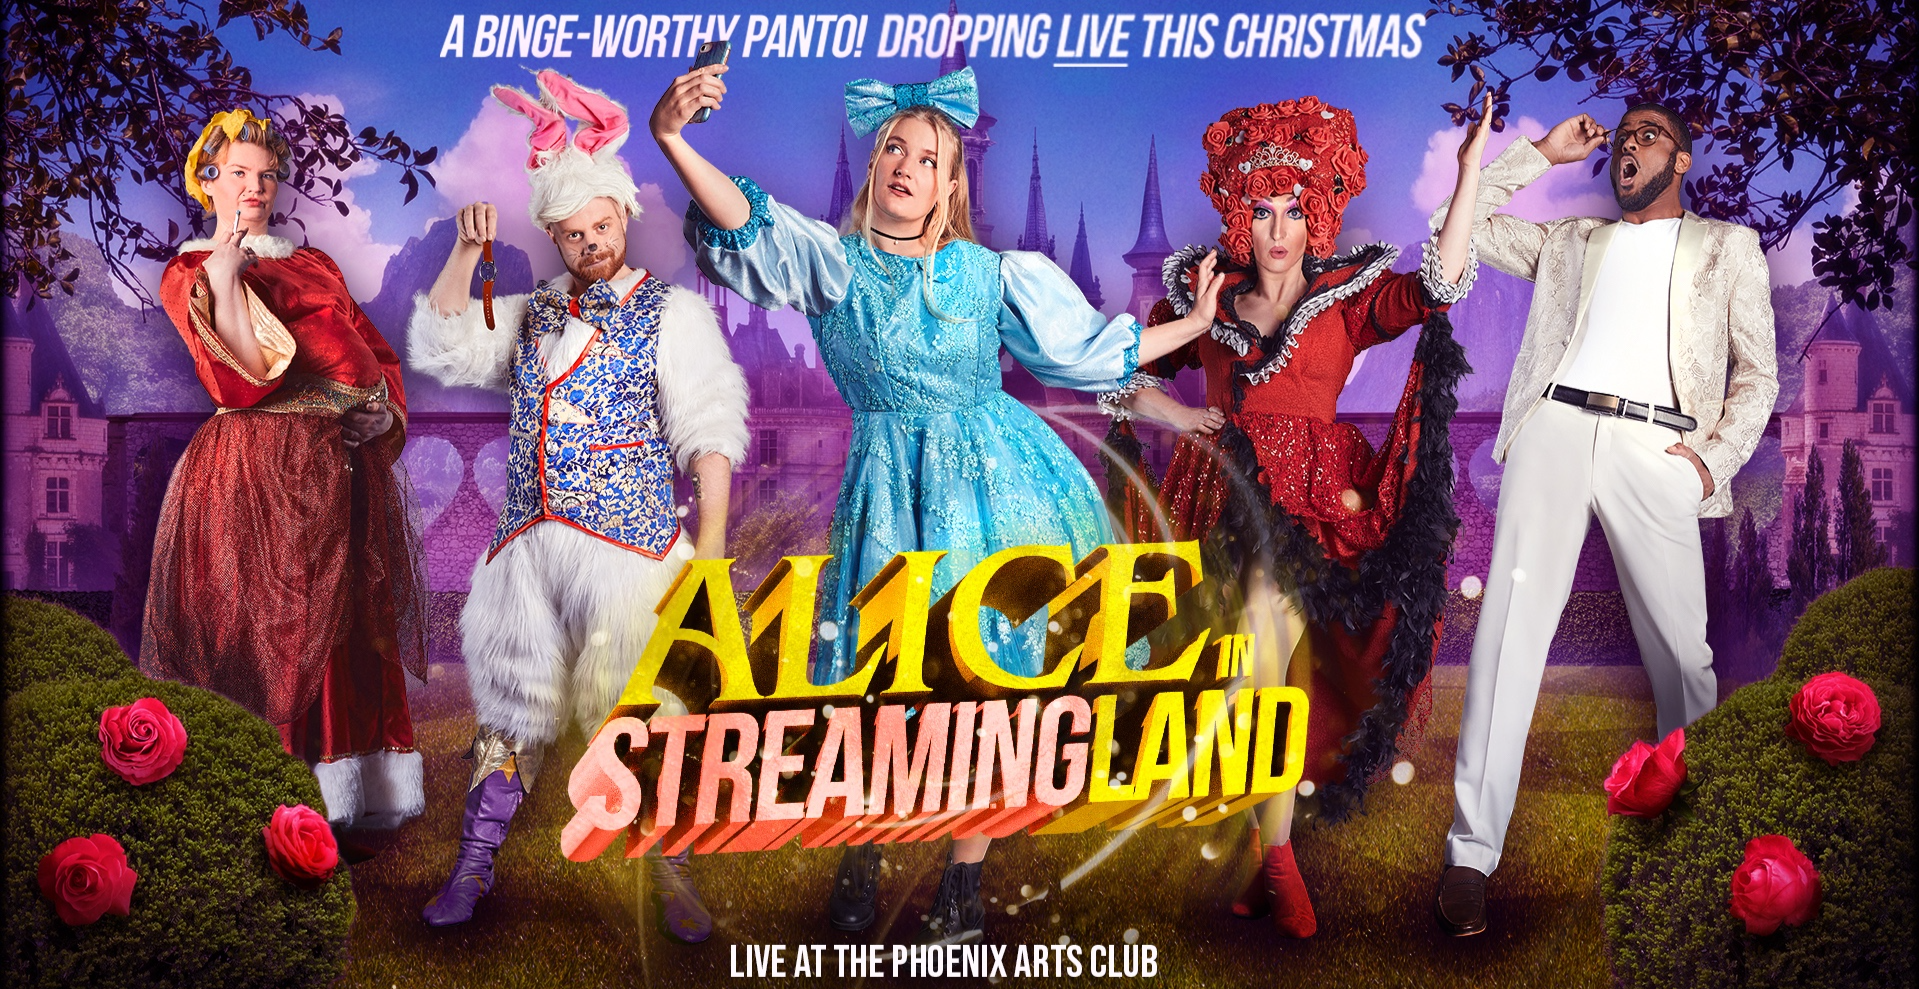 Alice in Streamingland: A Binge-Worthy Musical Pantomime